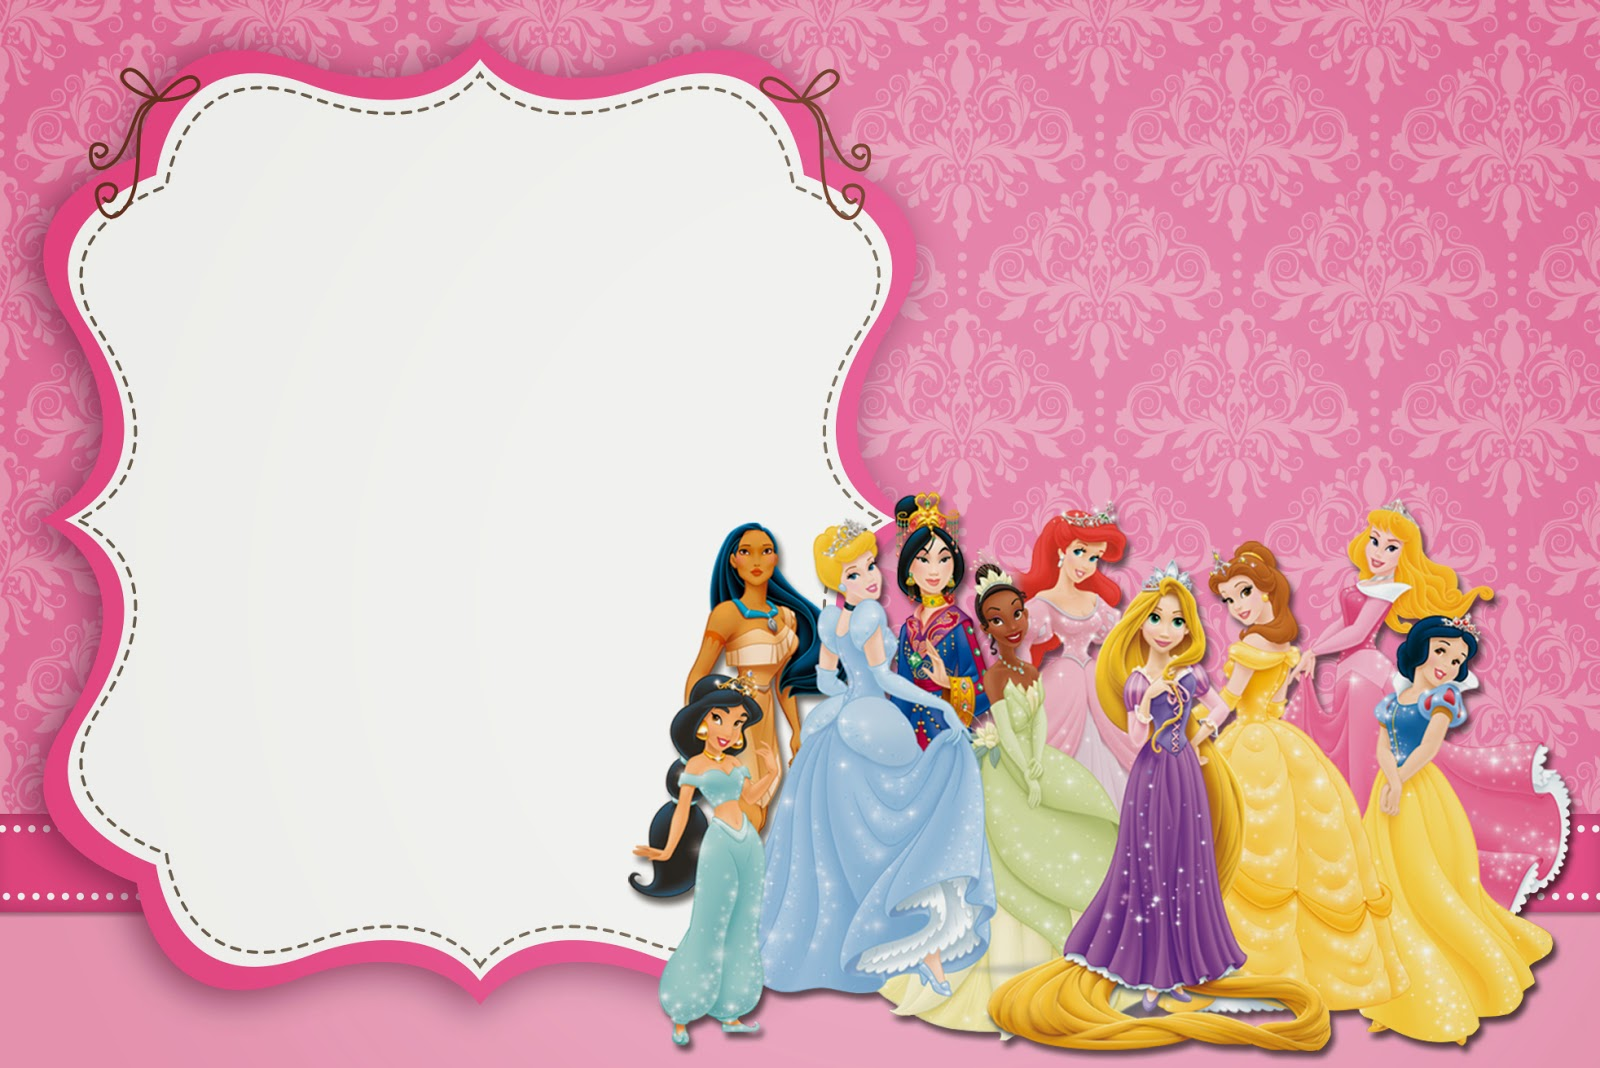 Disney Princess Party Free Printable Invitations